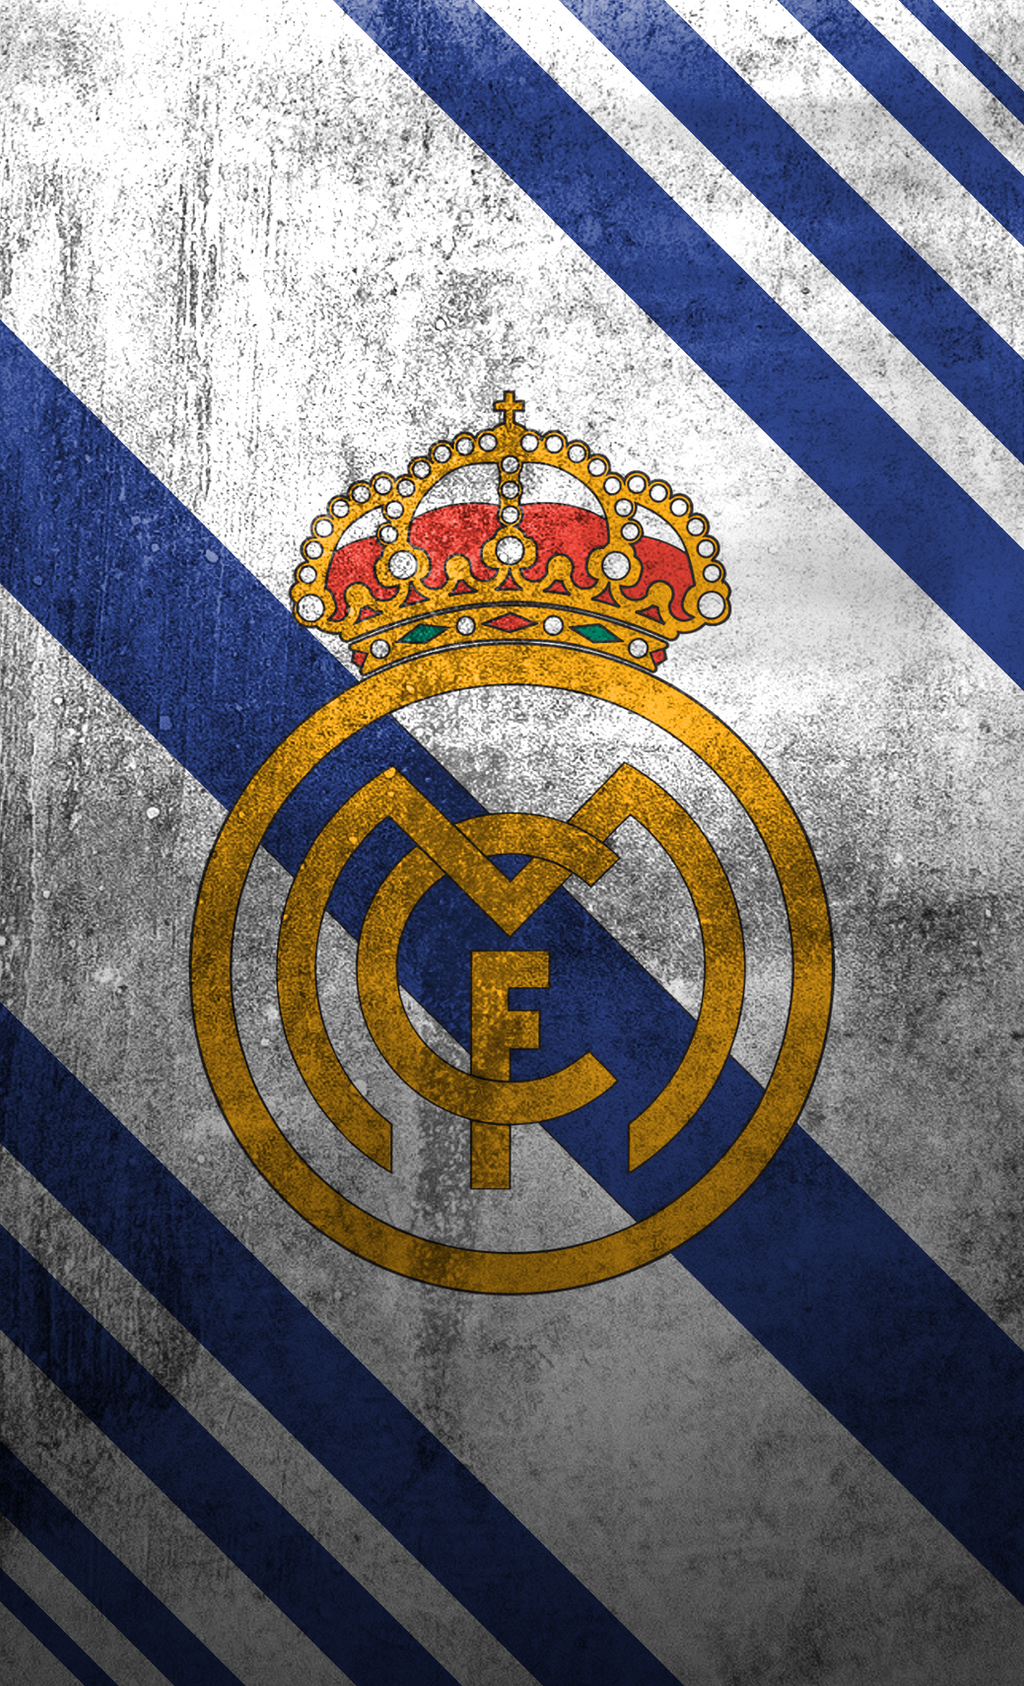 Favorit Real Madrid logo mobile wallpaper (1) by Adik1910 on DeviantArt XL06